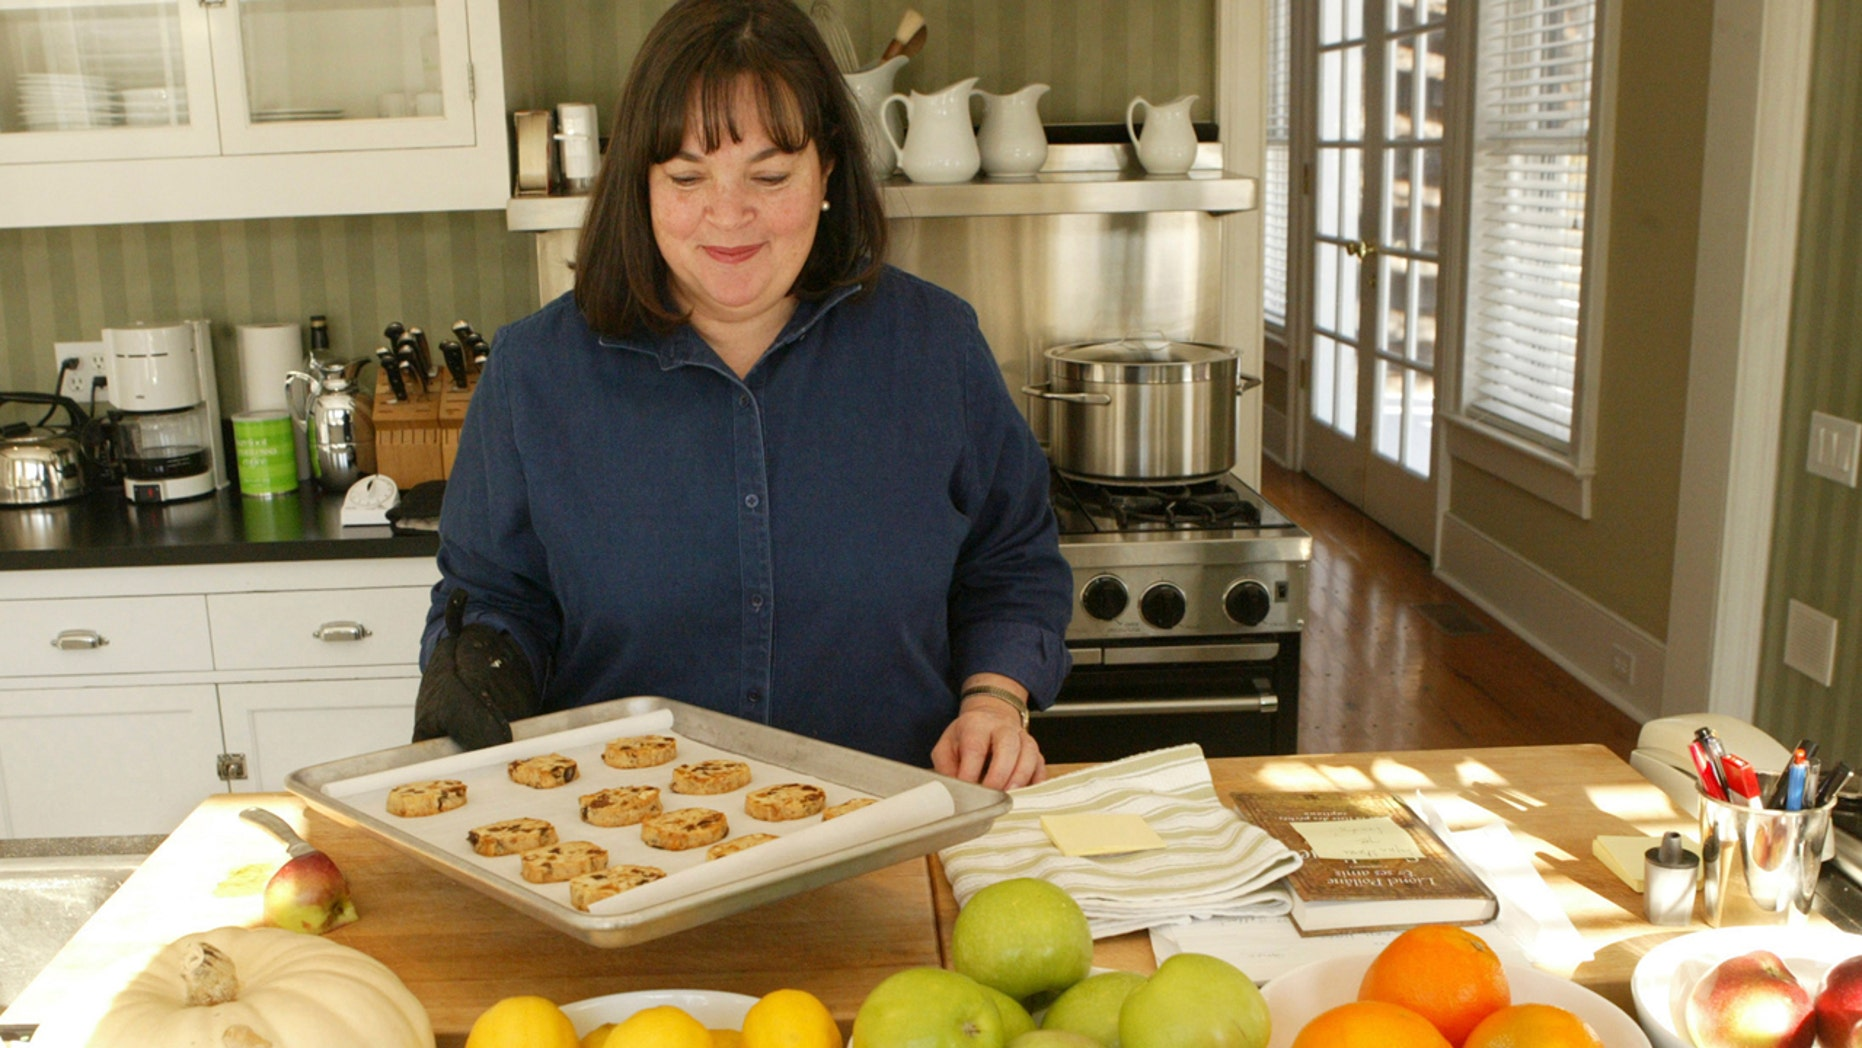 Ina Garten Headshot Celebrity Chef On Set Of Her Food Network Show Barefoot